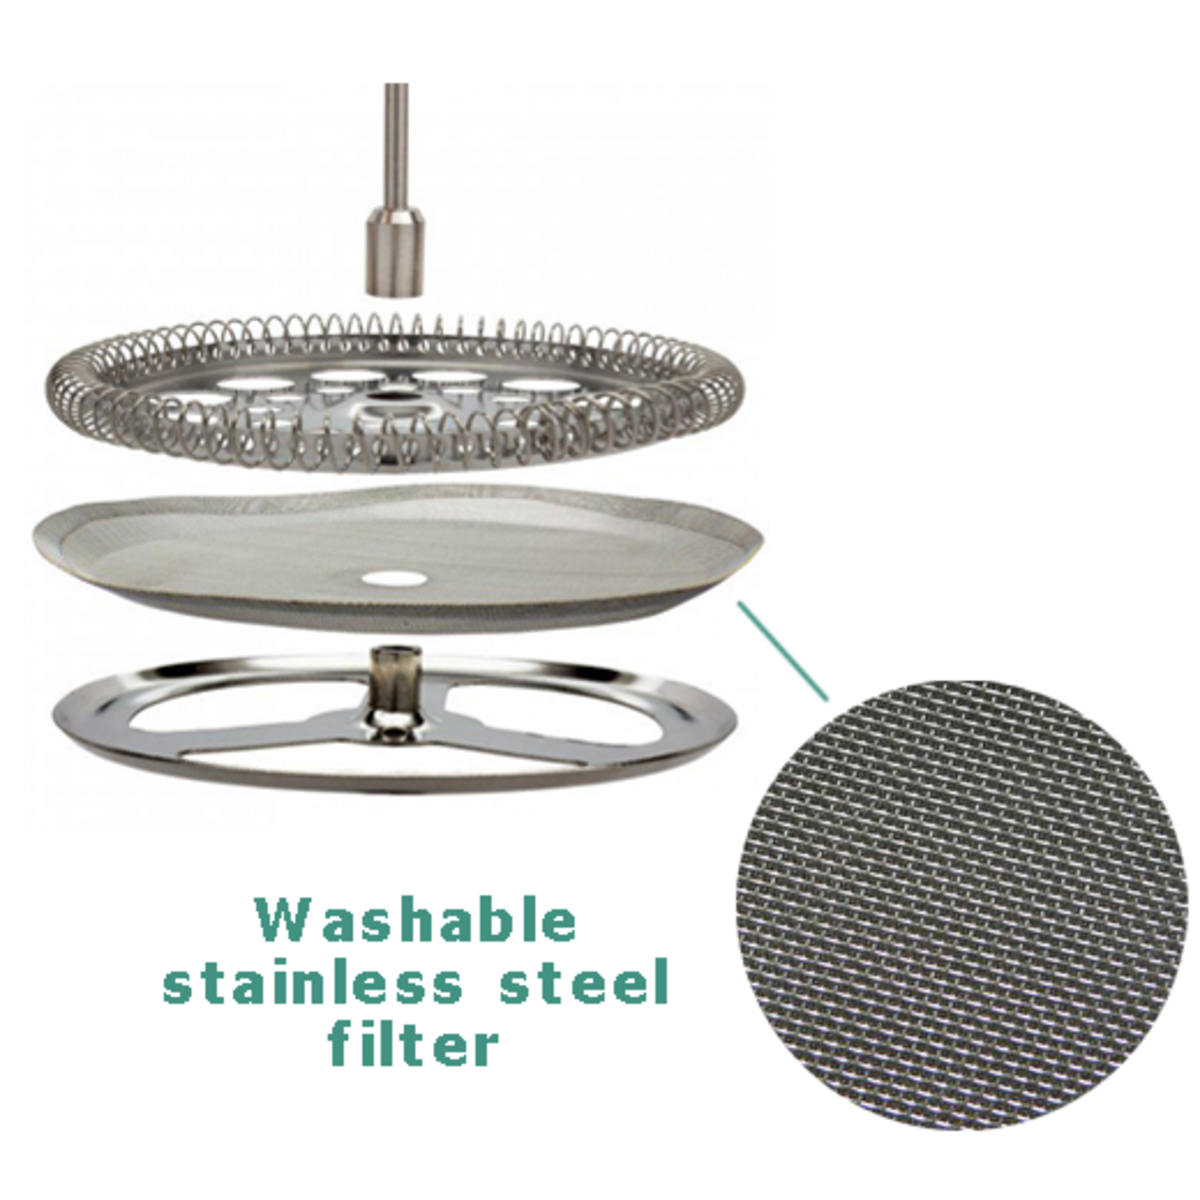 The easy to clean stainless steel mesh filter makes the filtration process fast.